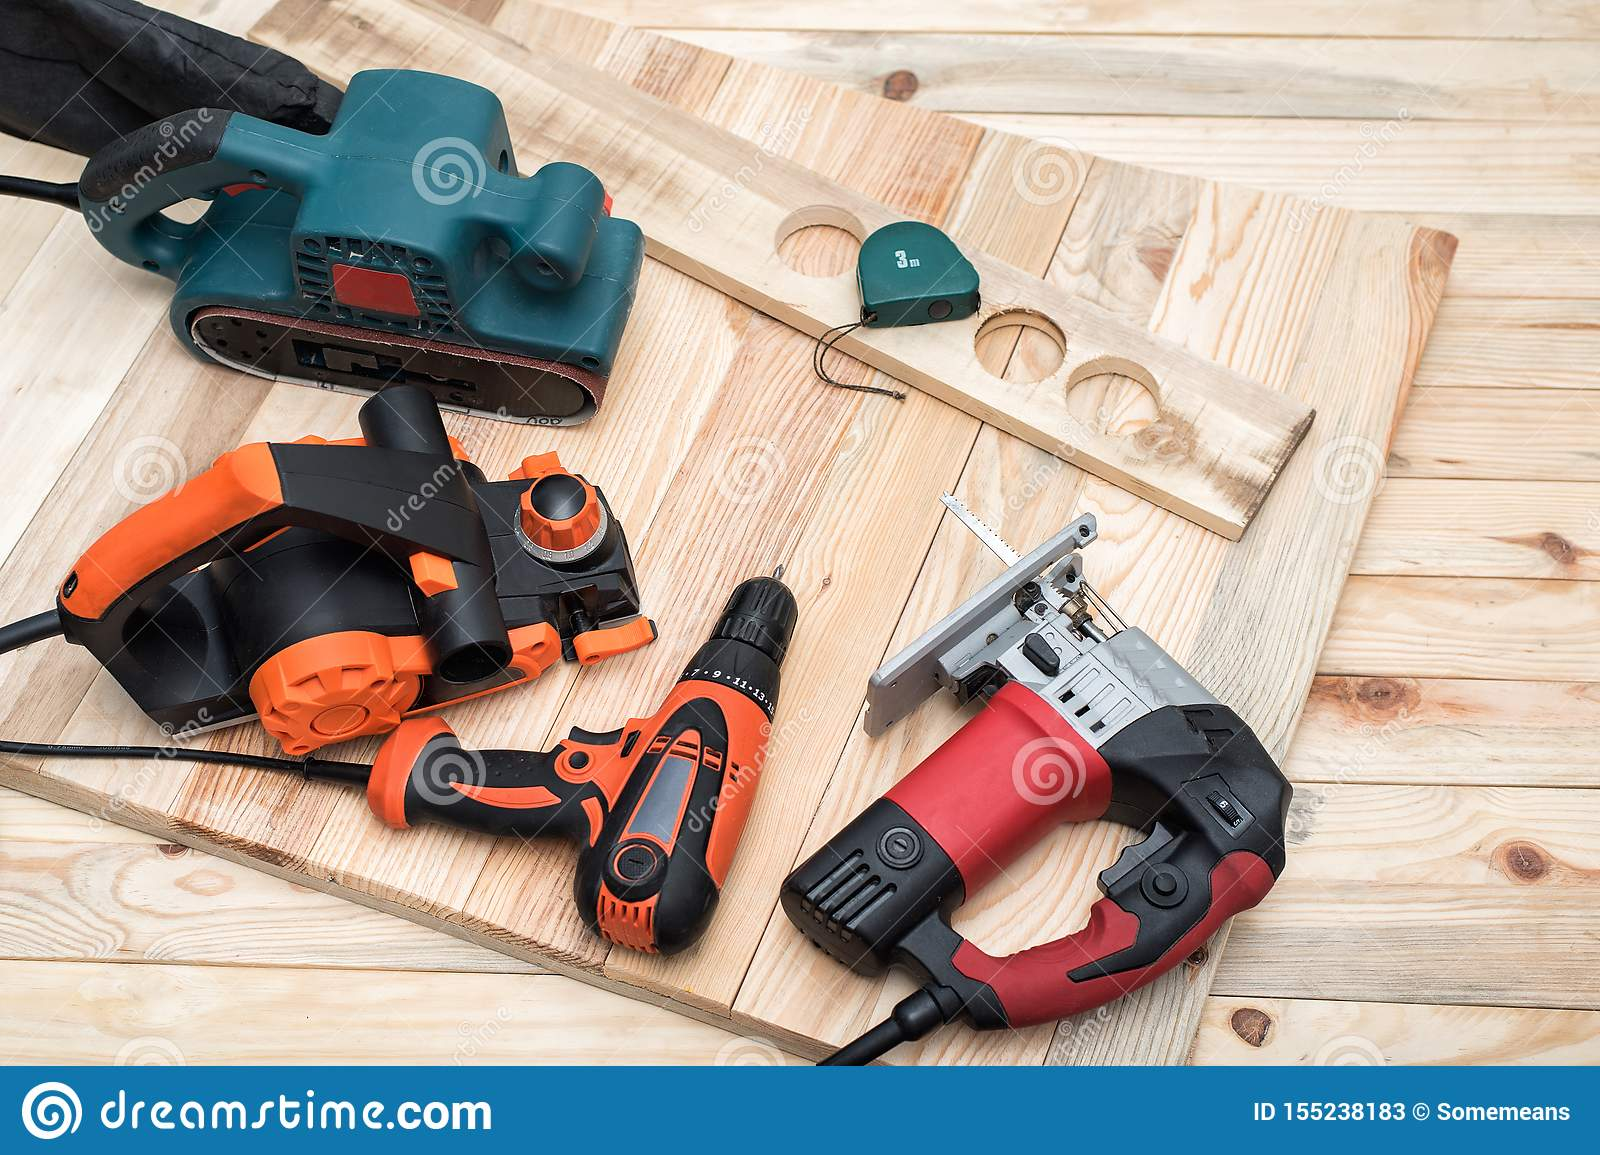 Set Of Handheld Woodworking Power Tools For Woodworking And